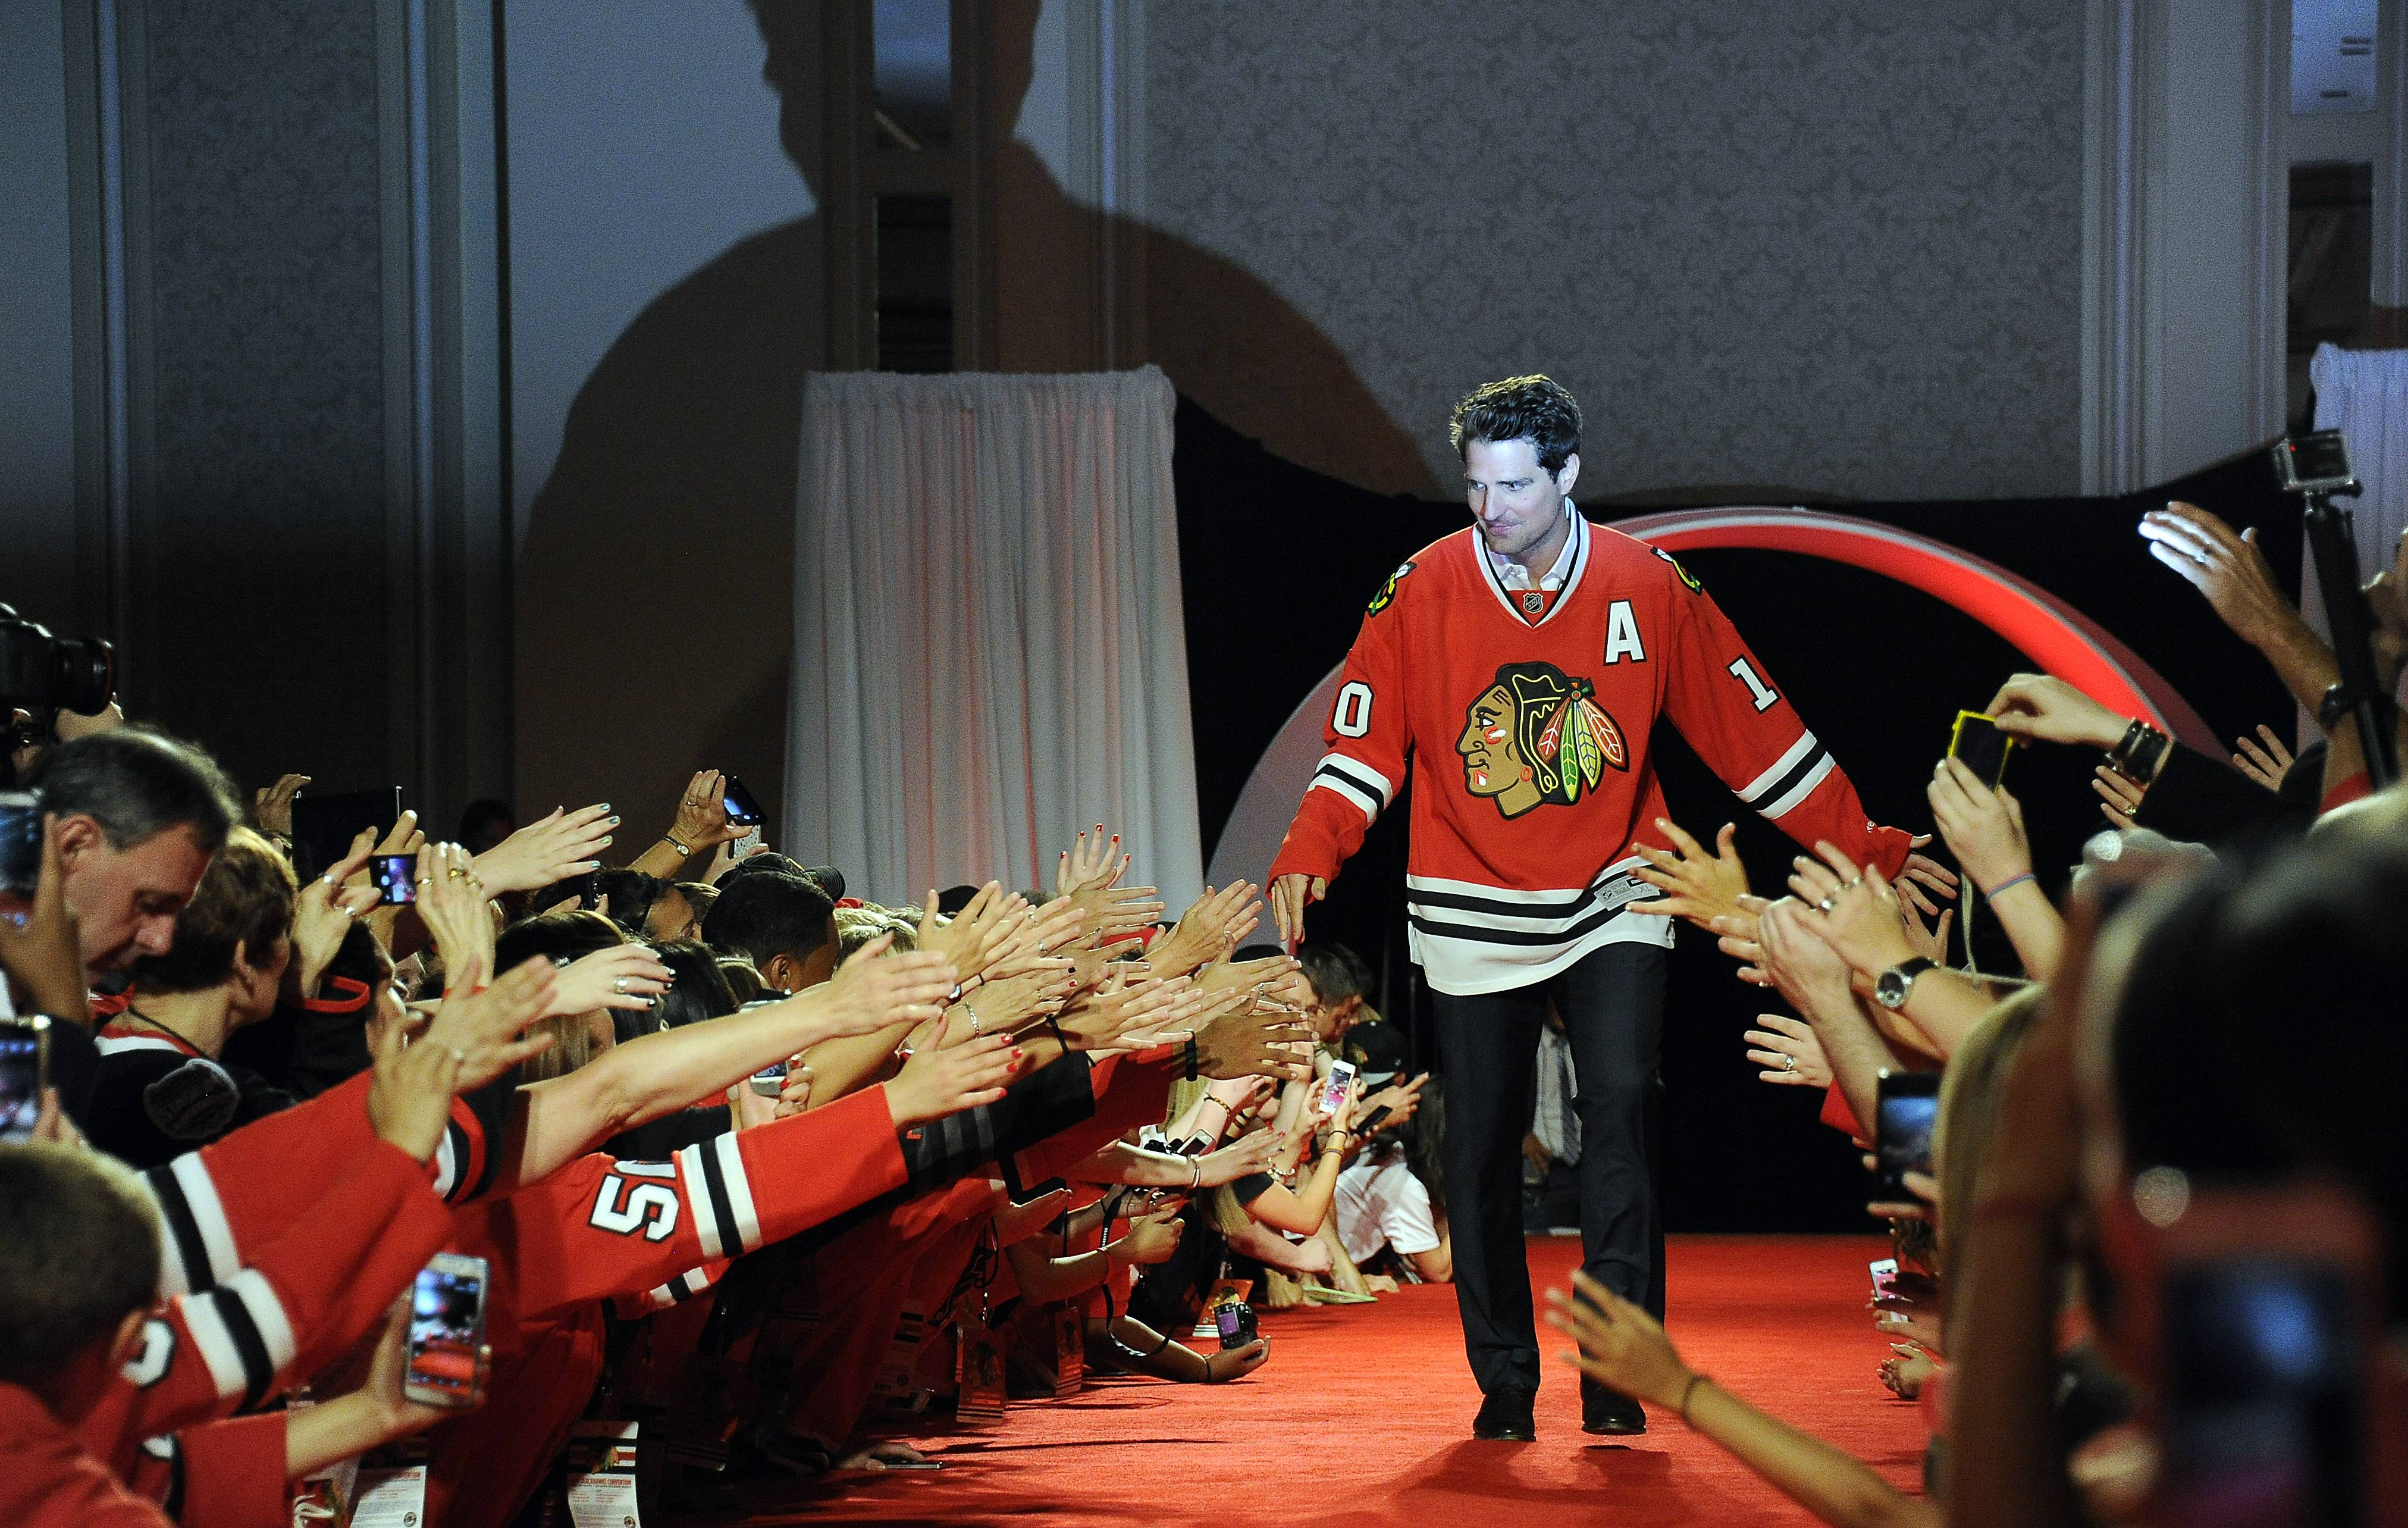 The Blackhawks' Patrick Sharp walks the red carpet as fans cheer at the seventh annual Blackhawks Convention in Chicago on Friday.